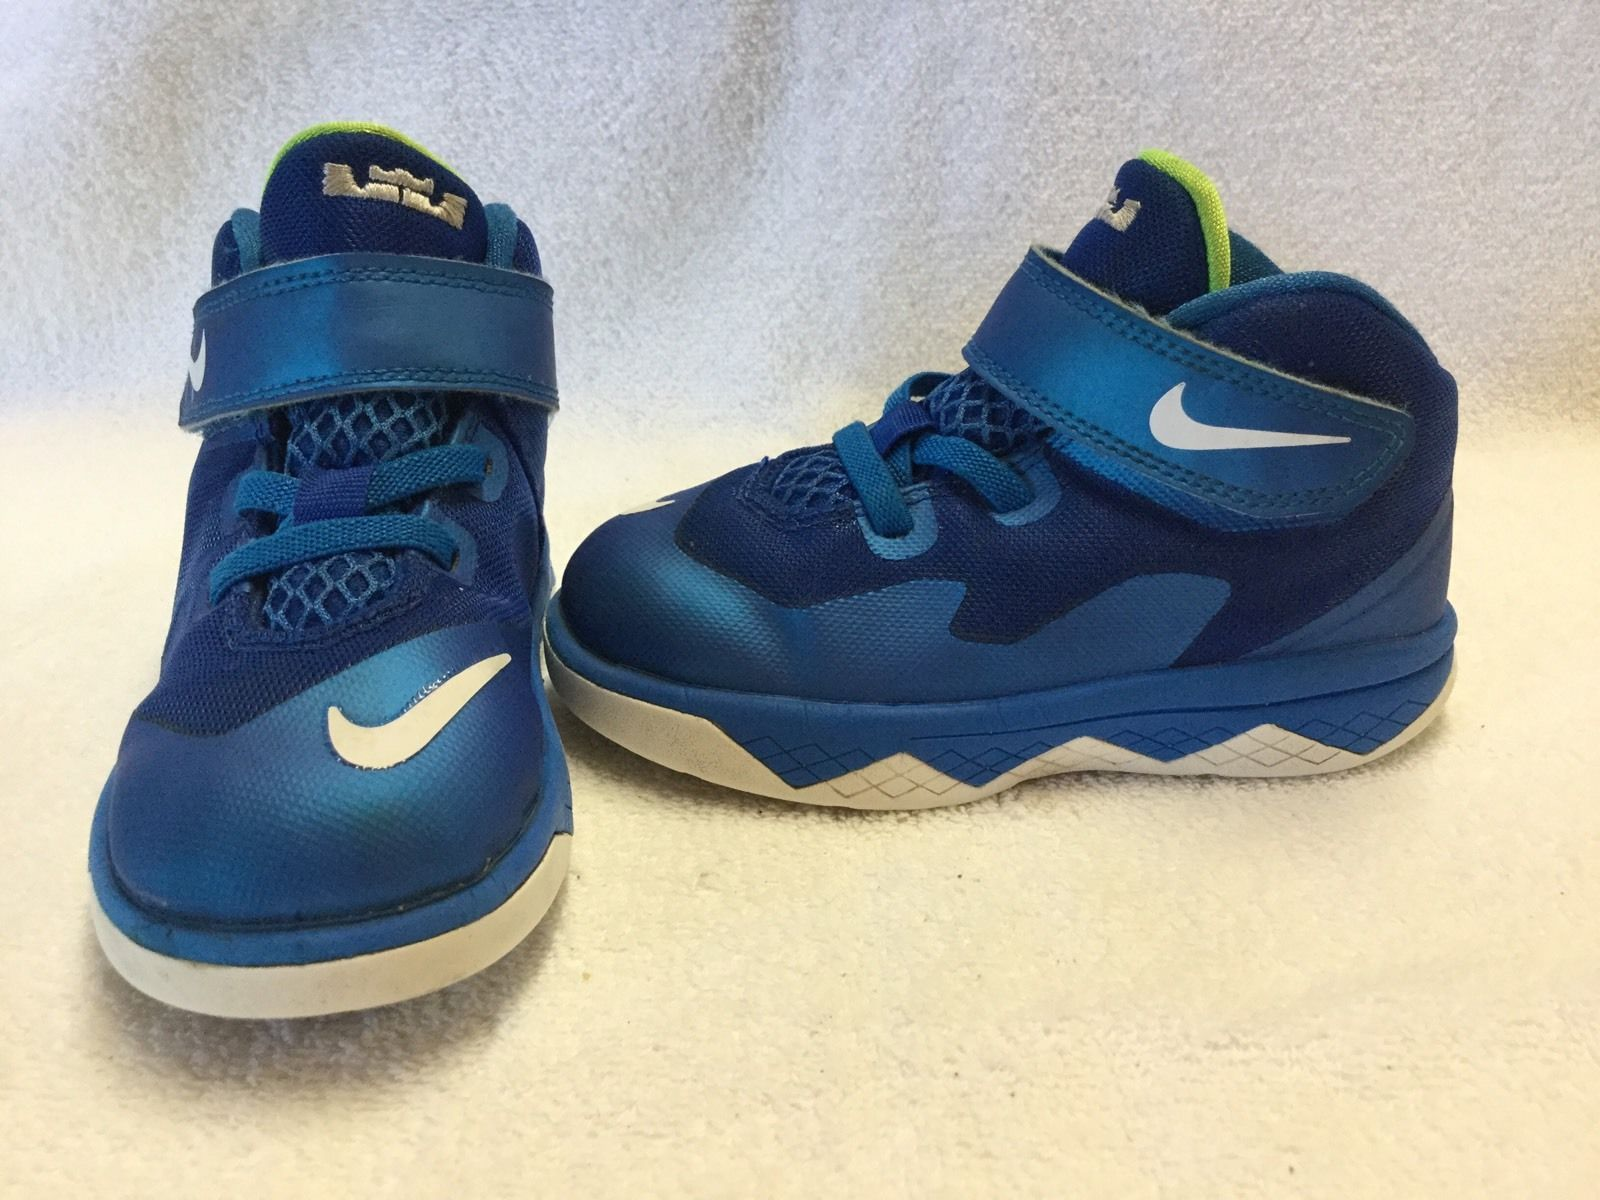 Nike Lebron Soldier 8 Infant Toddler Boys Royal Blue Shoes Size 8 C | eBay